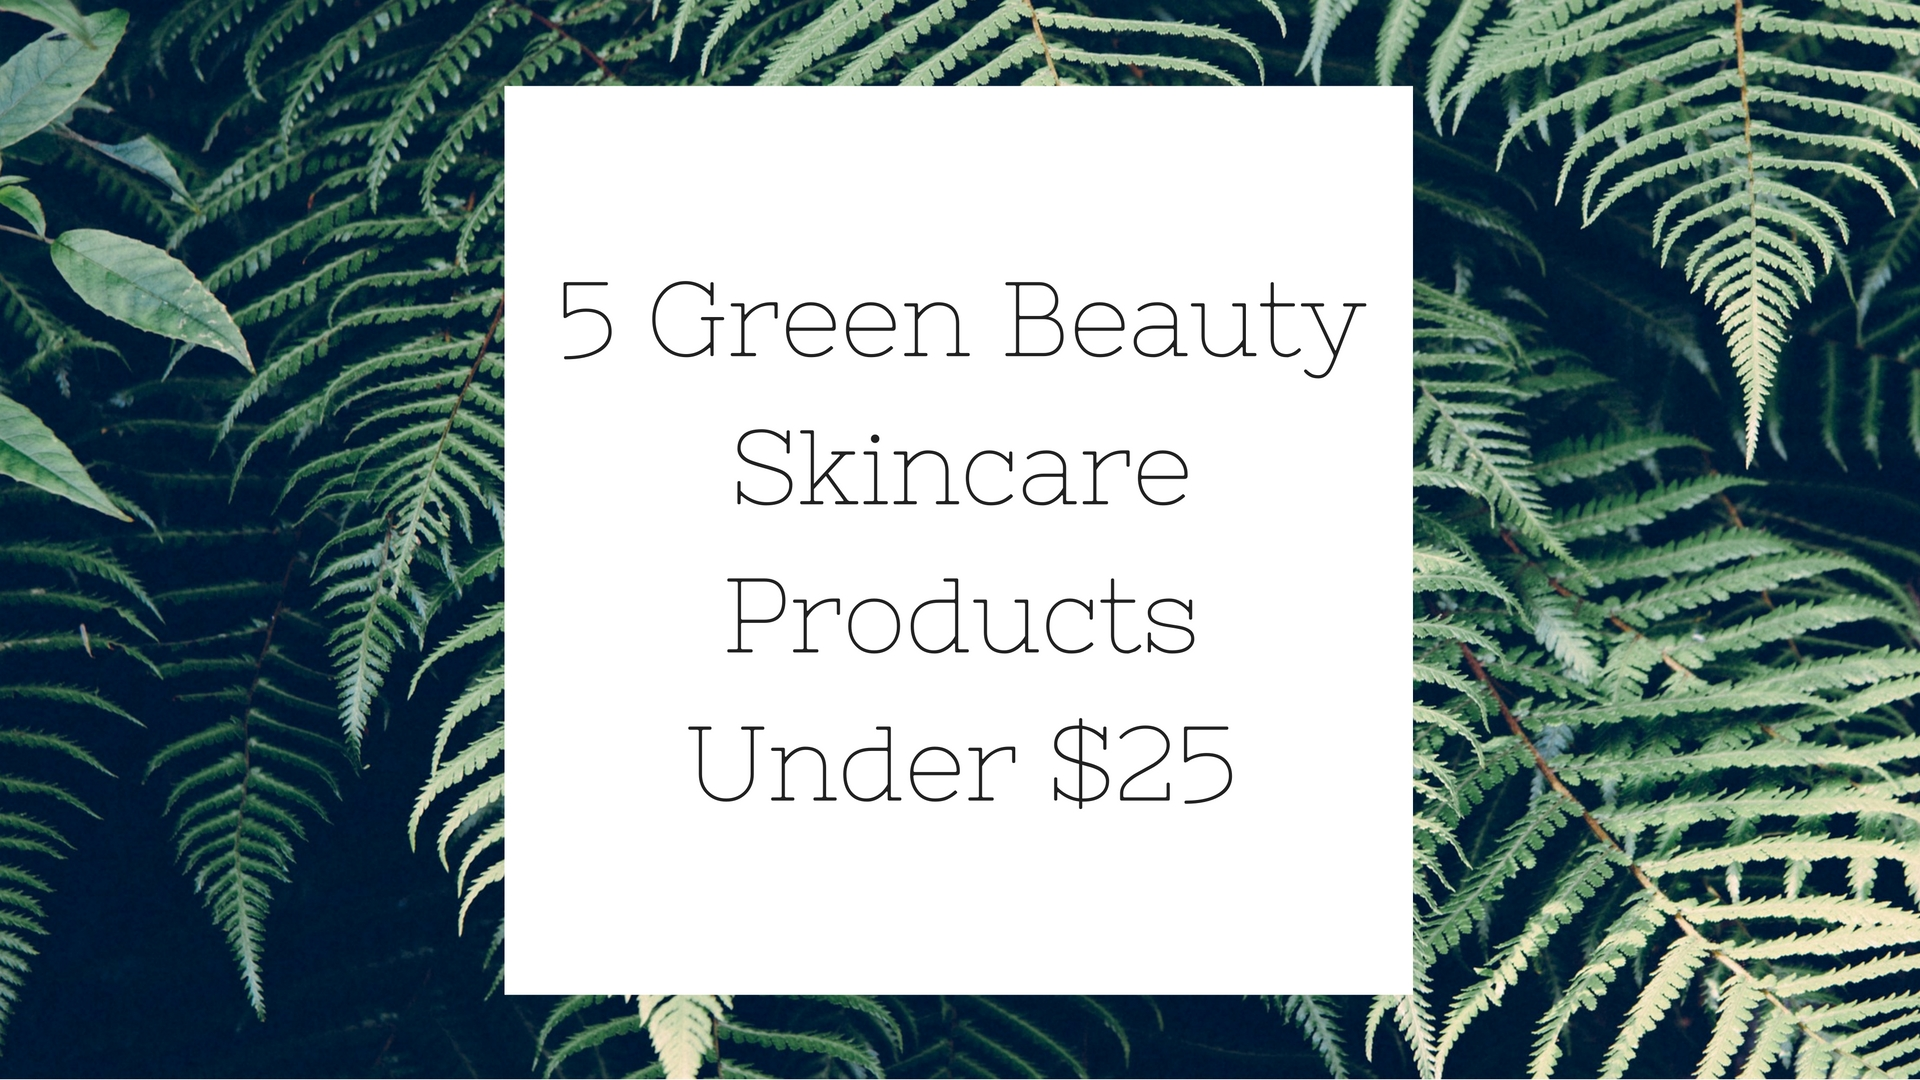 5 Green Beauty Skincare Products Under $25